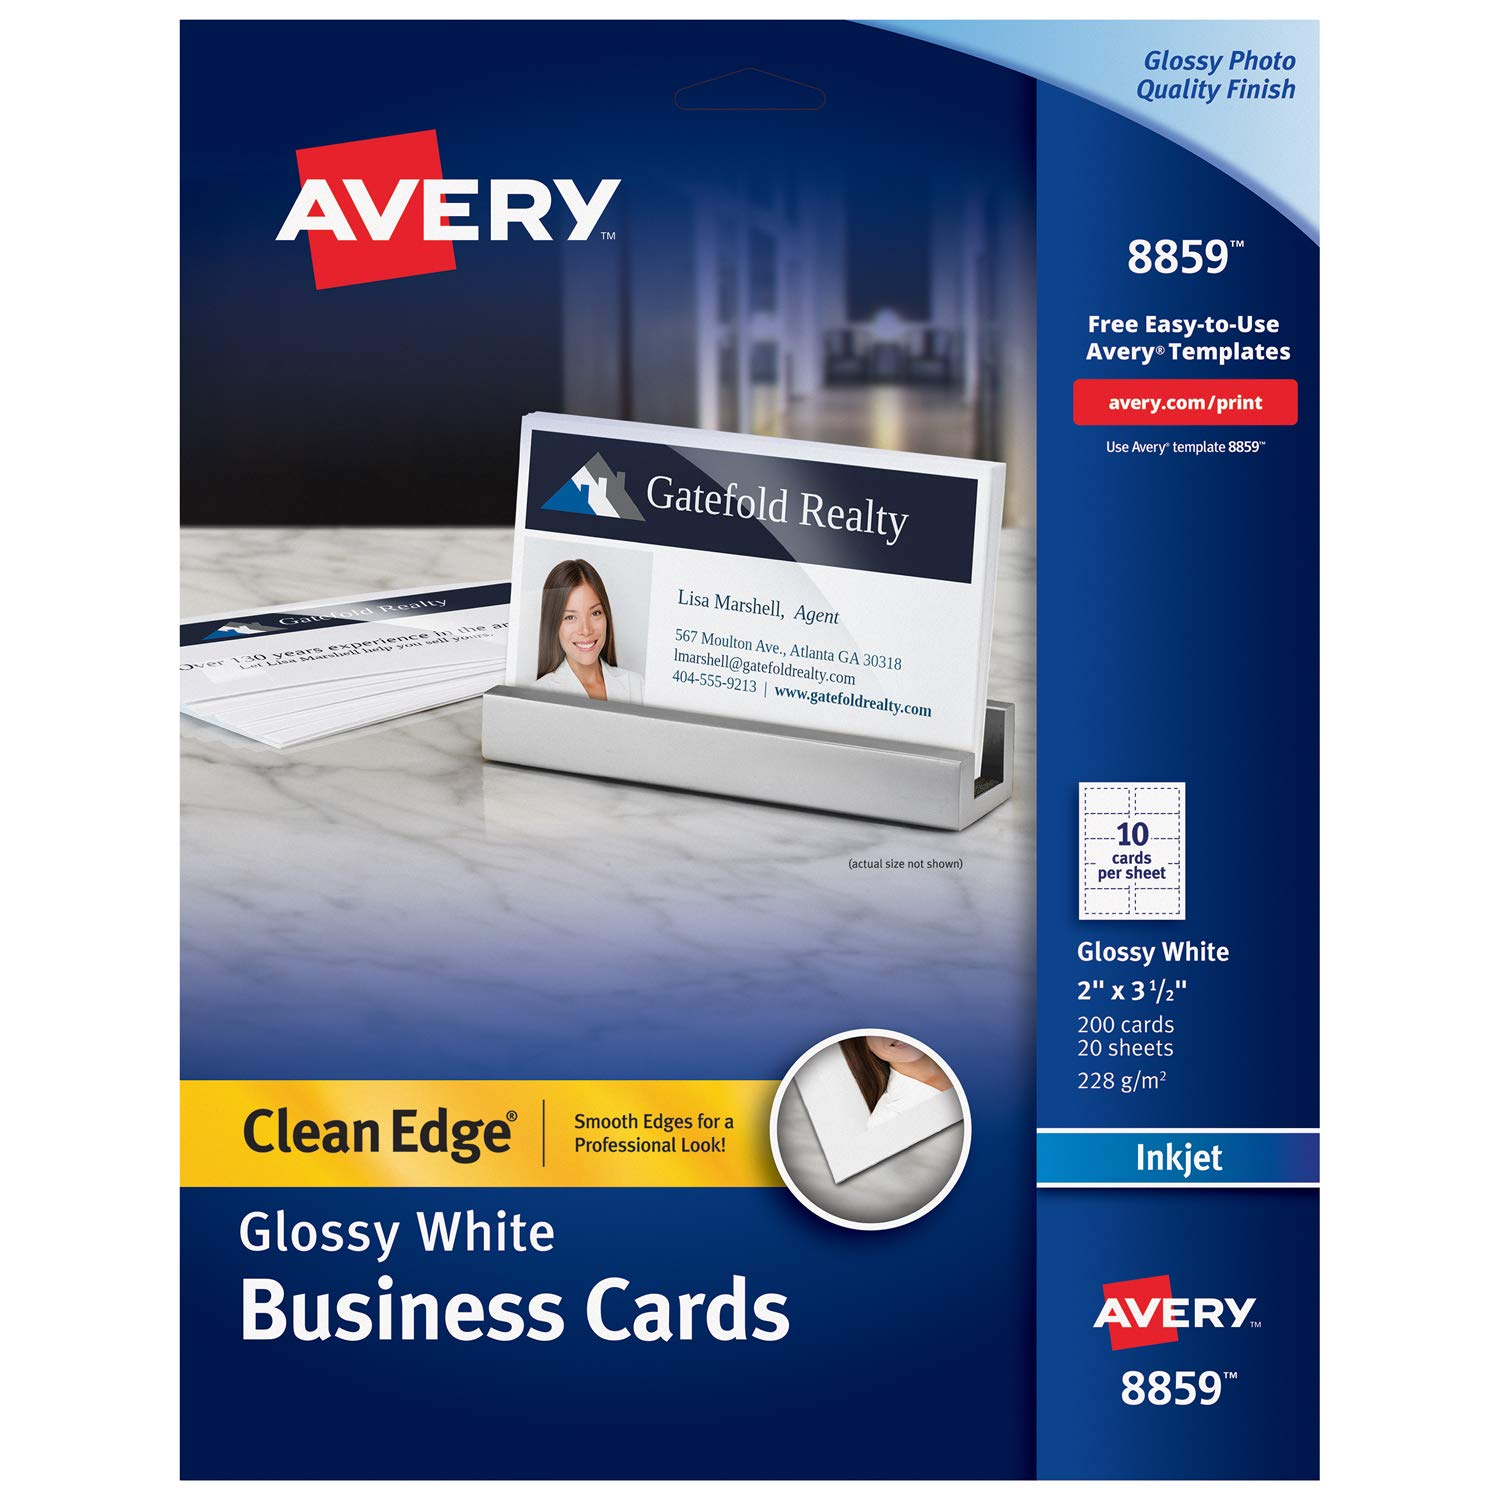 Avery Printable Business Cards, Inkjet Printers, 200 Cards, 2 x 3.5, Clean Edge, Heavyweight, Glossy (8859)